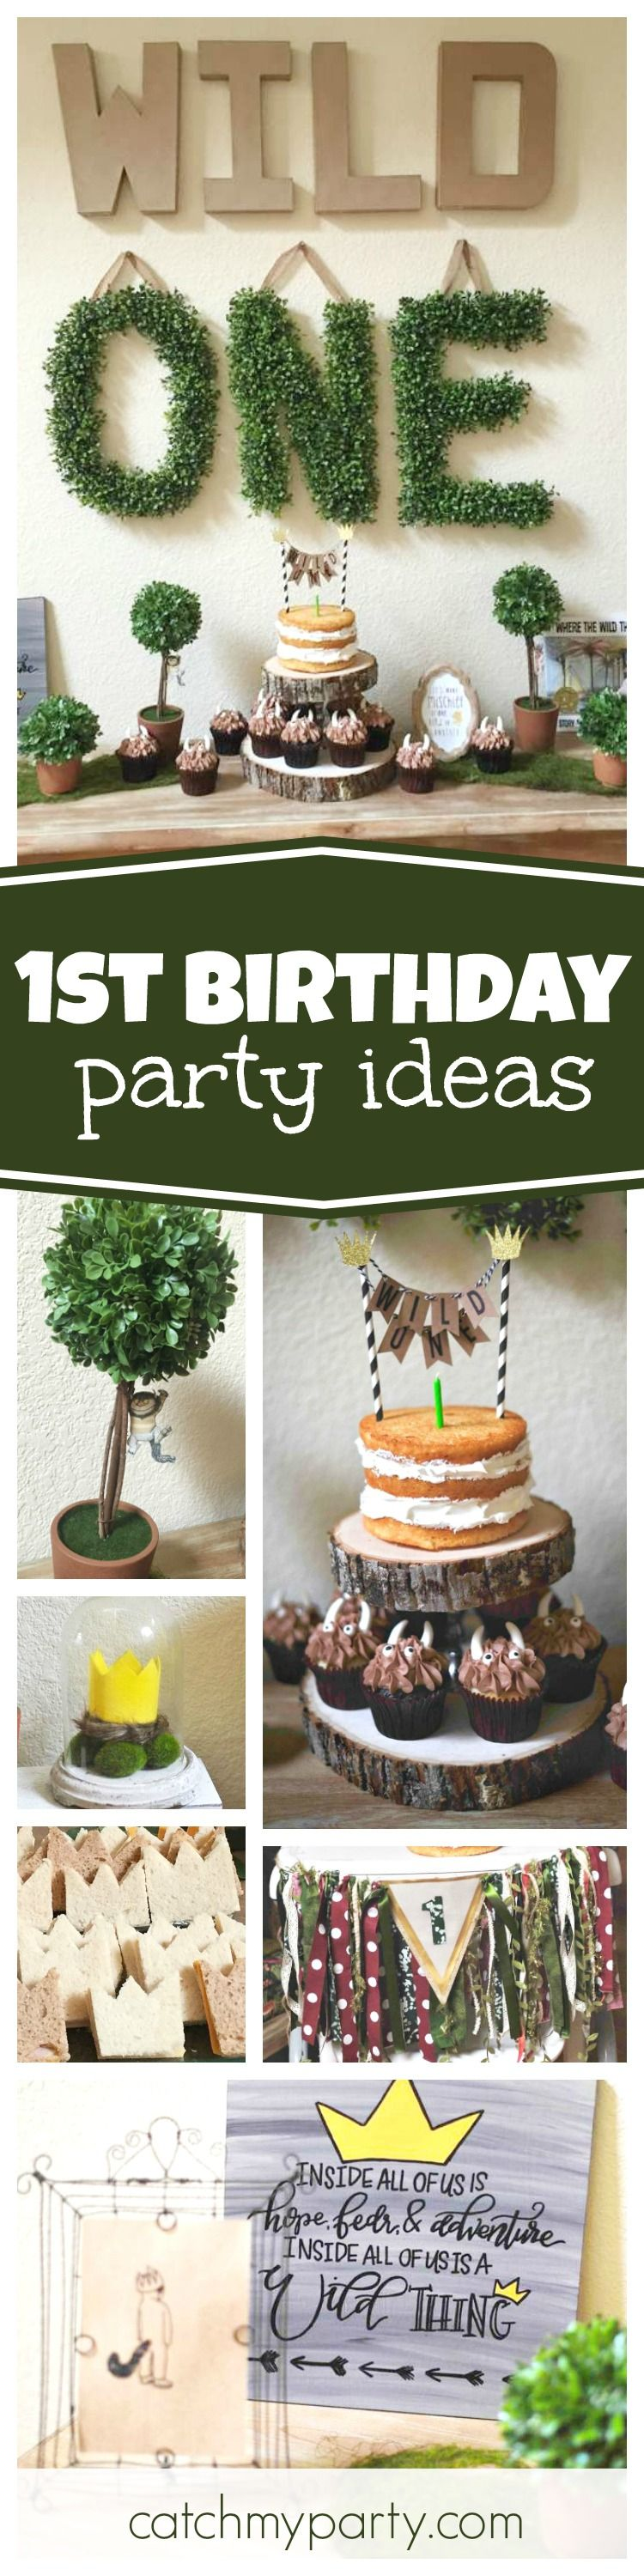 Check Out This Awesome Wild One Birthday Party The Cupcakes Are Adorable See More Ideas And Share Yours At CatchMyParty